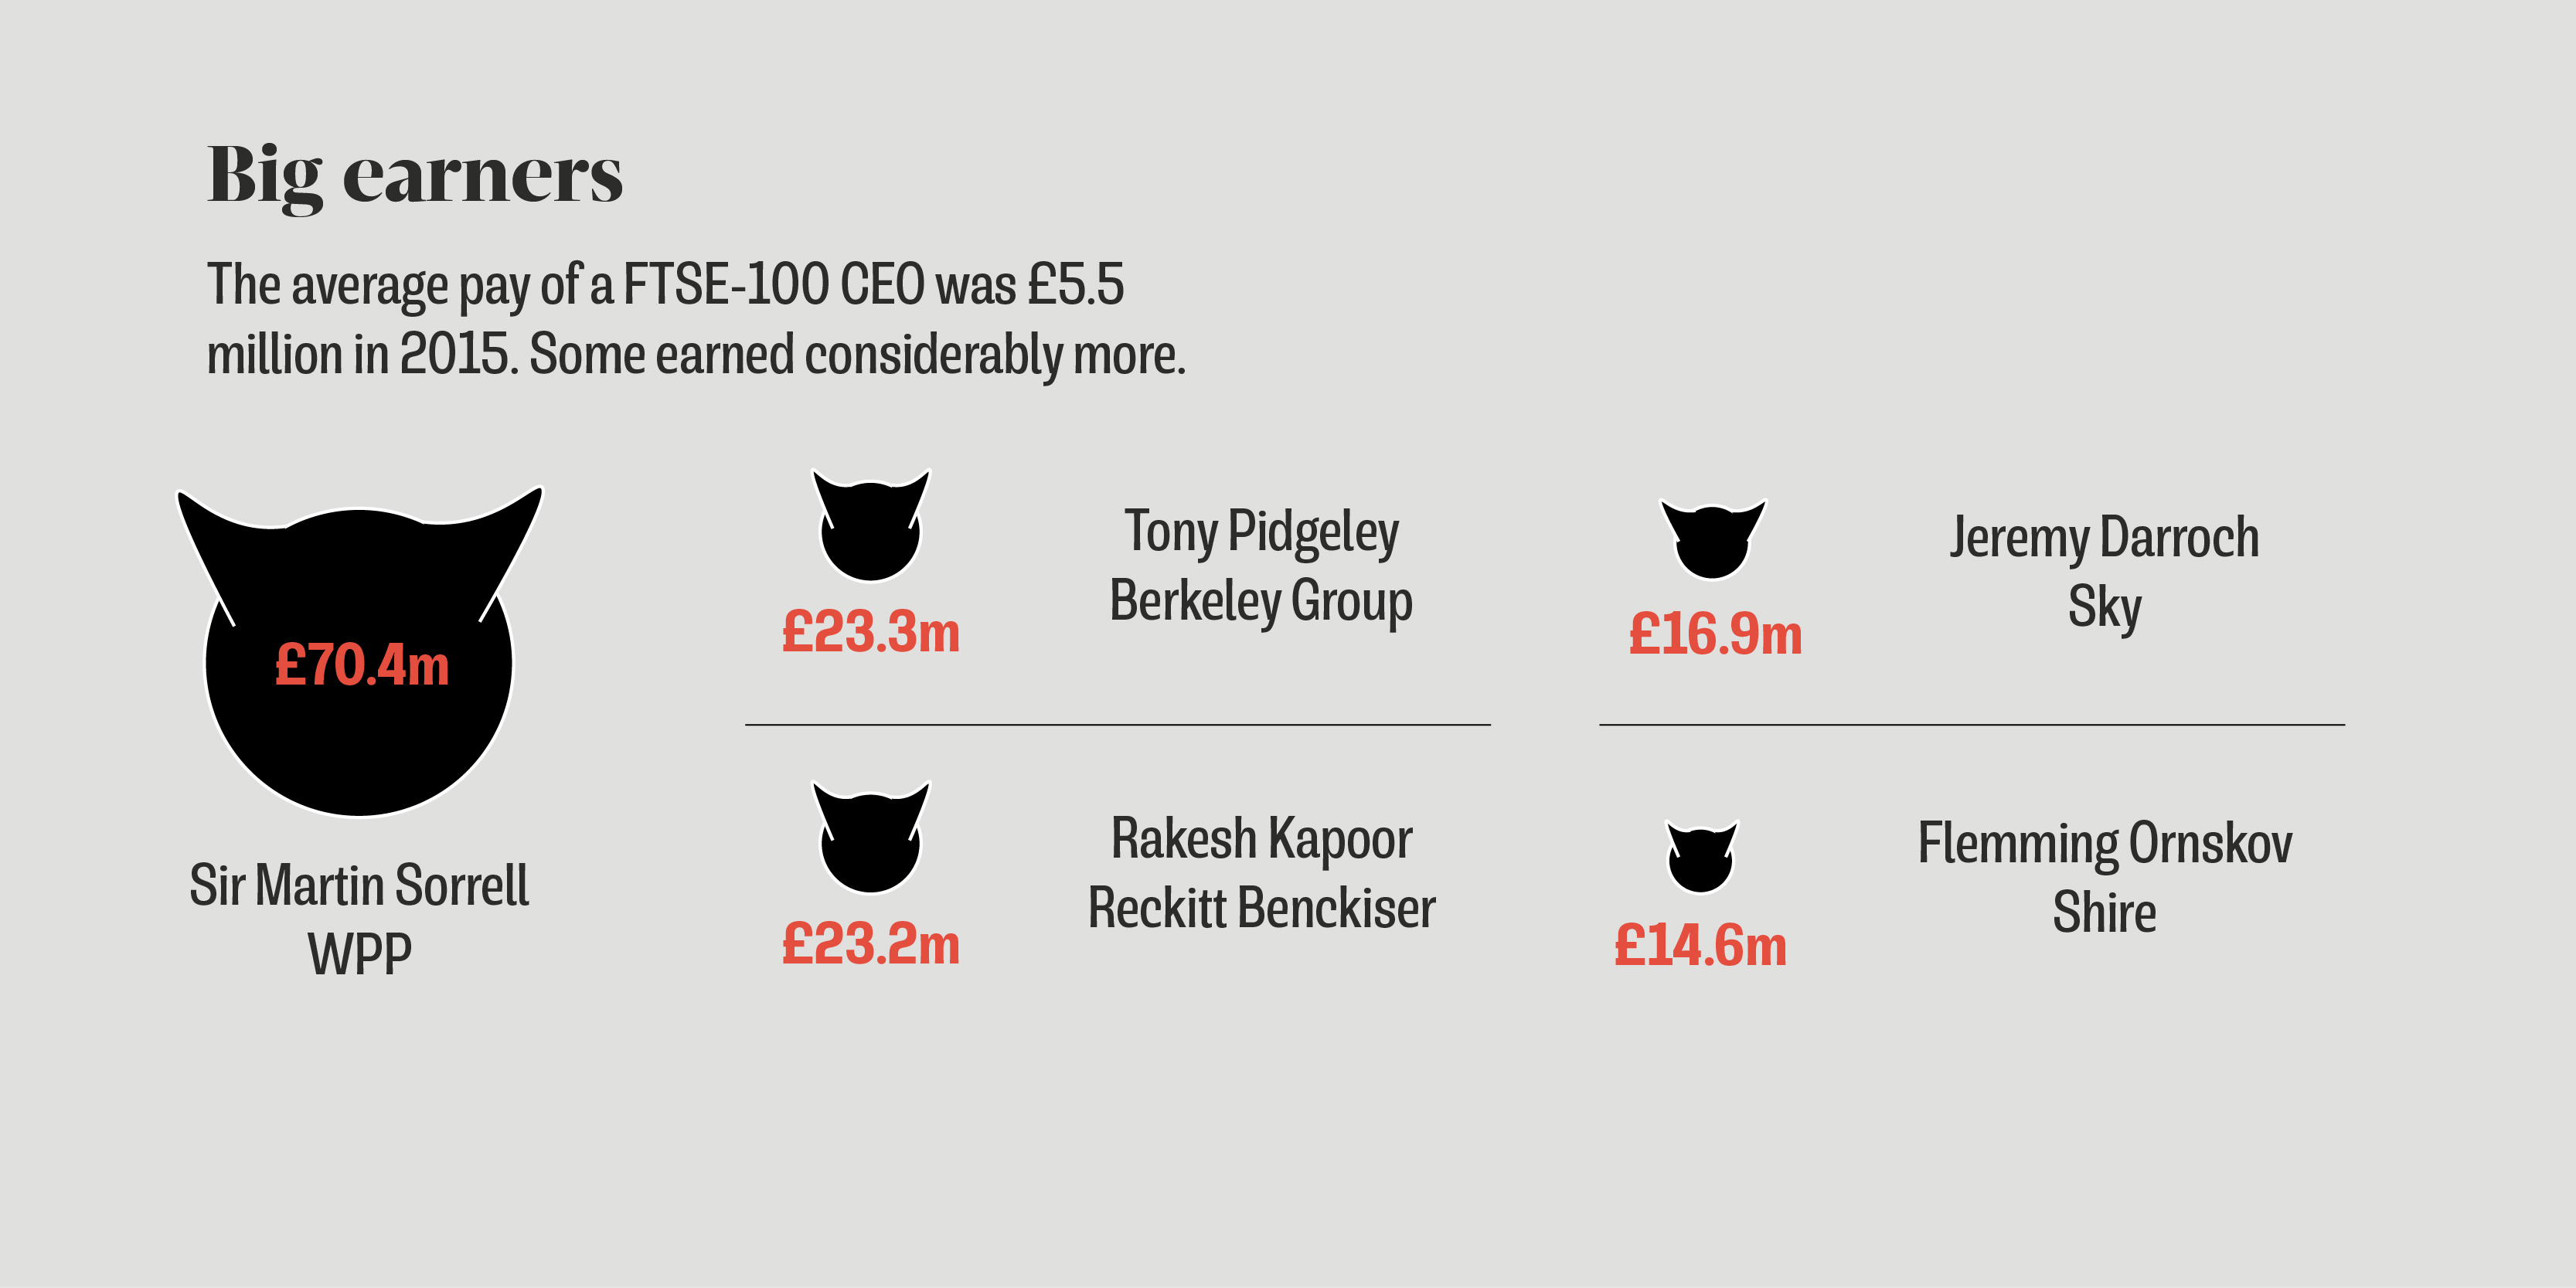 The average pay of FTSE 100 CEO was £5.5 million